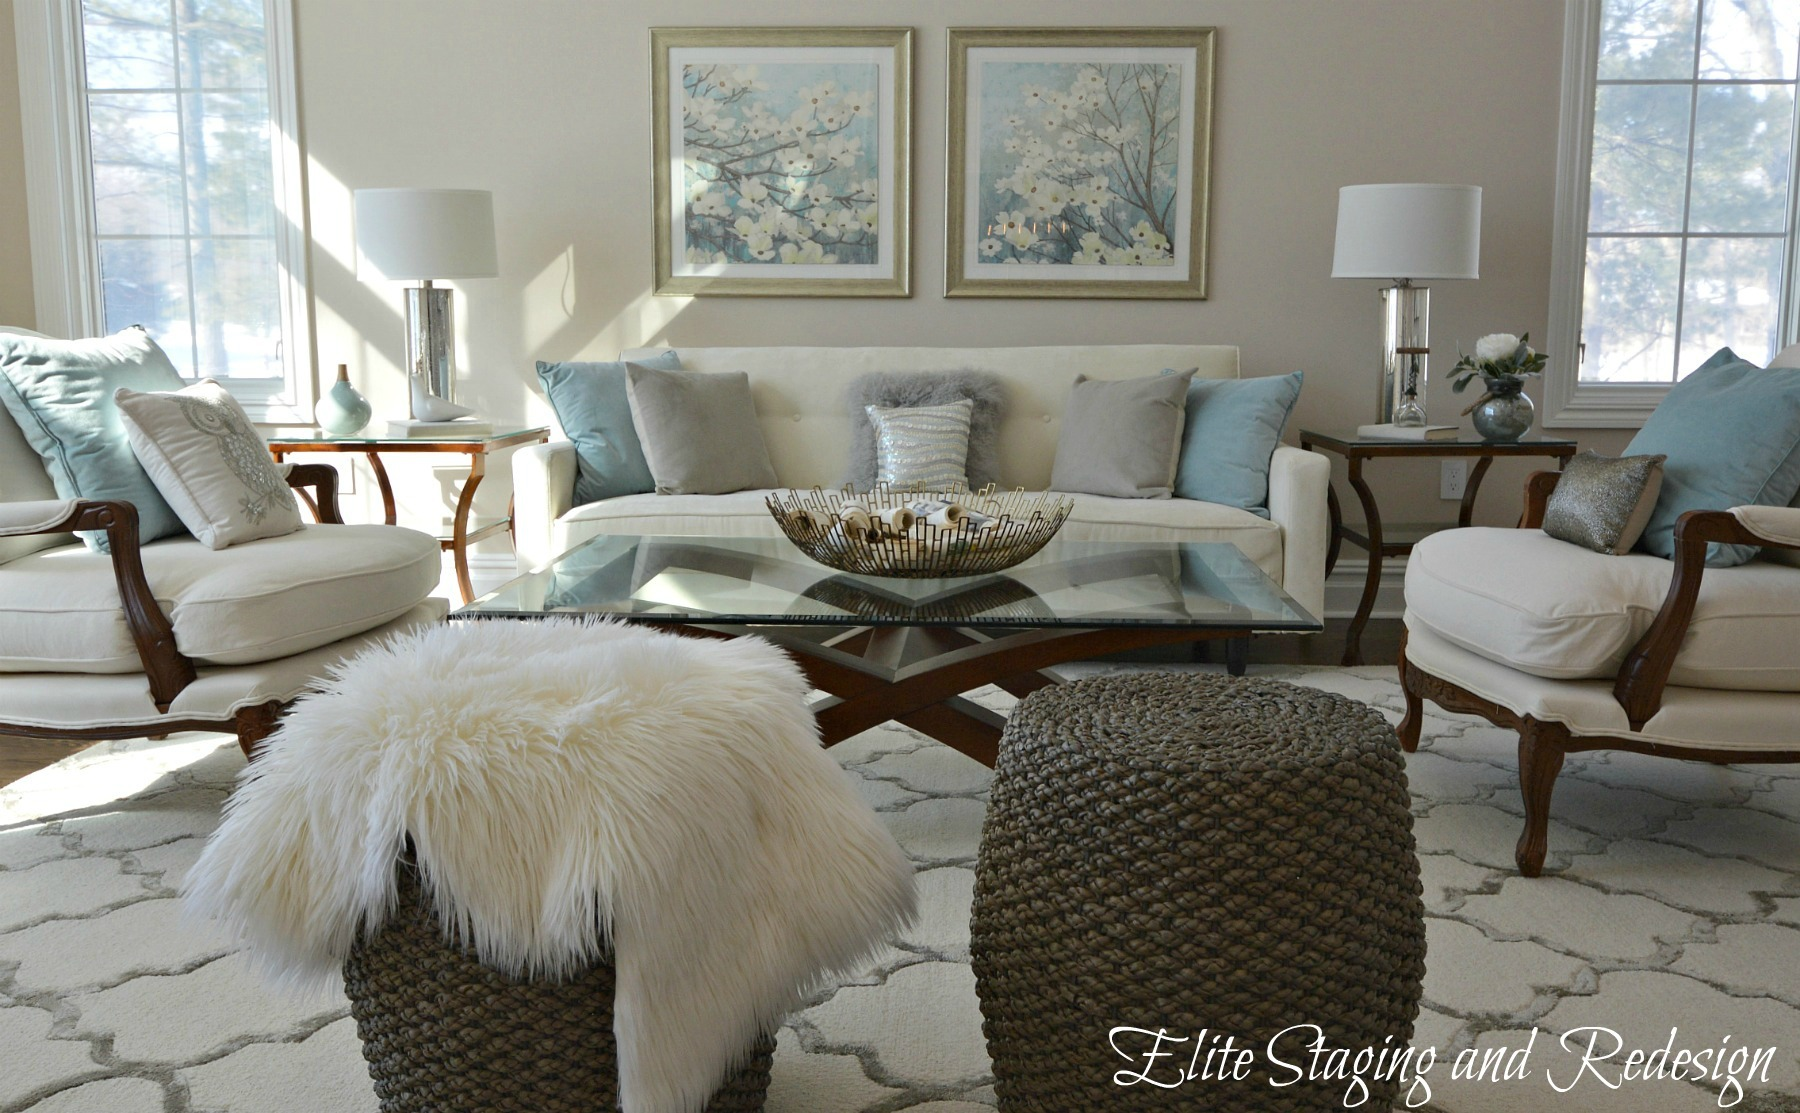 NJ Home Staging North Jersey Essex County Nj